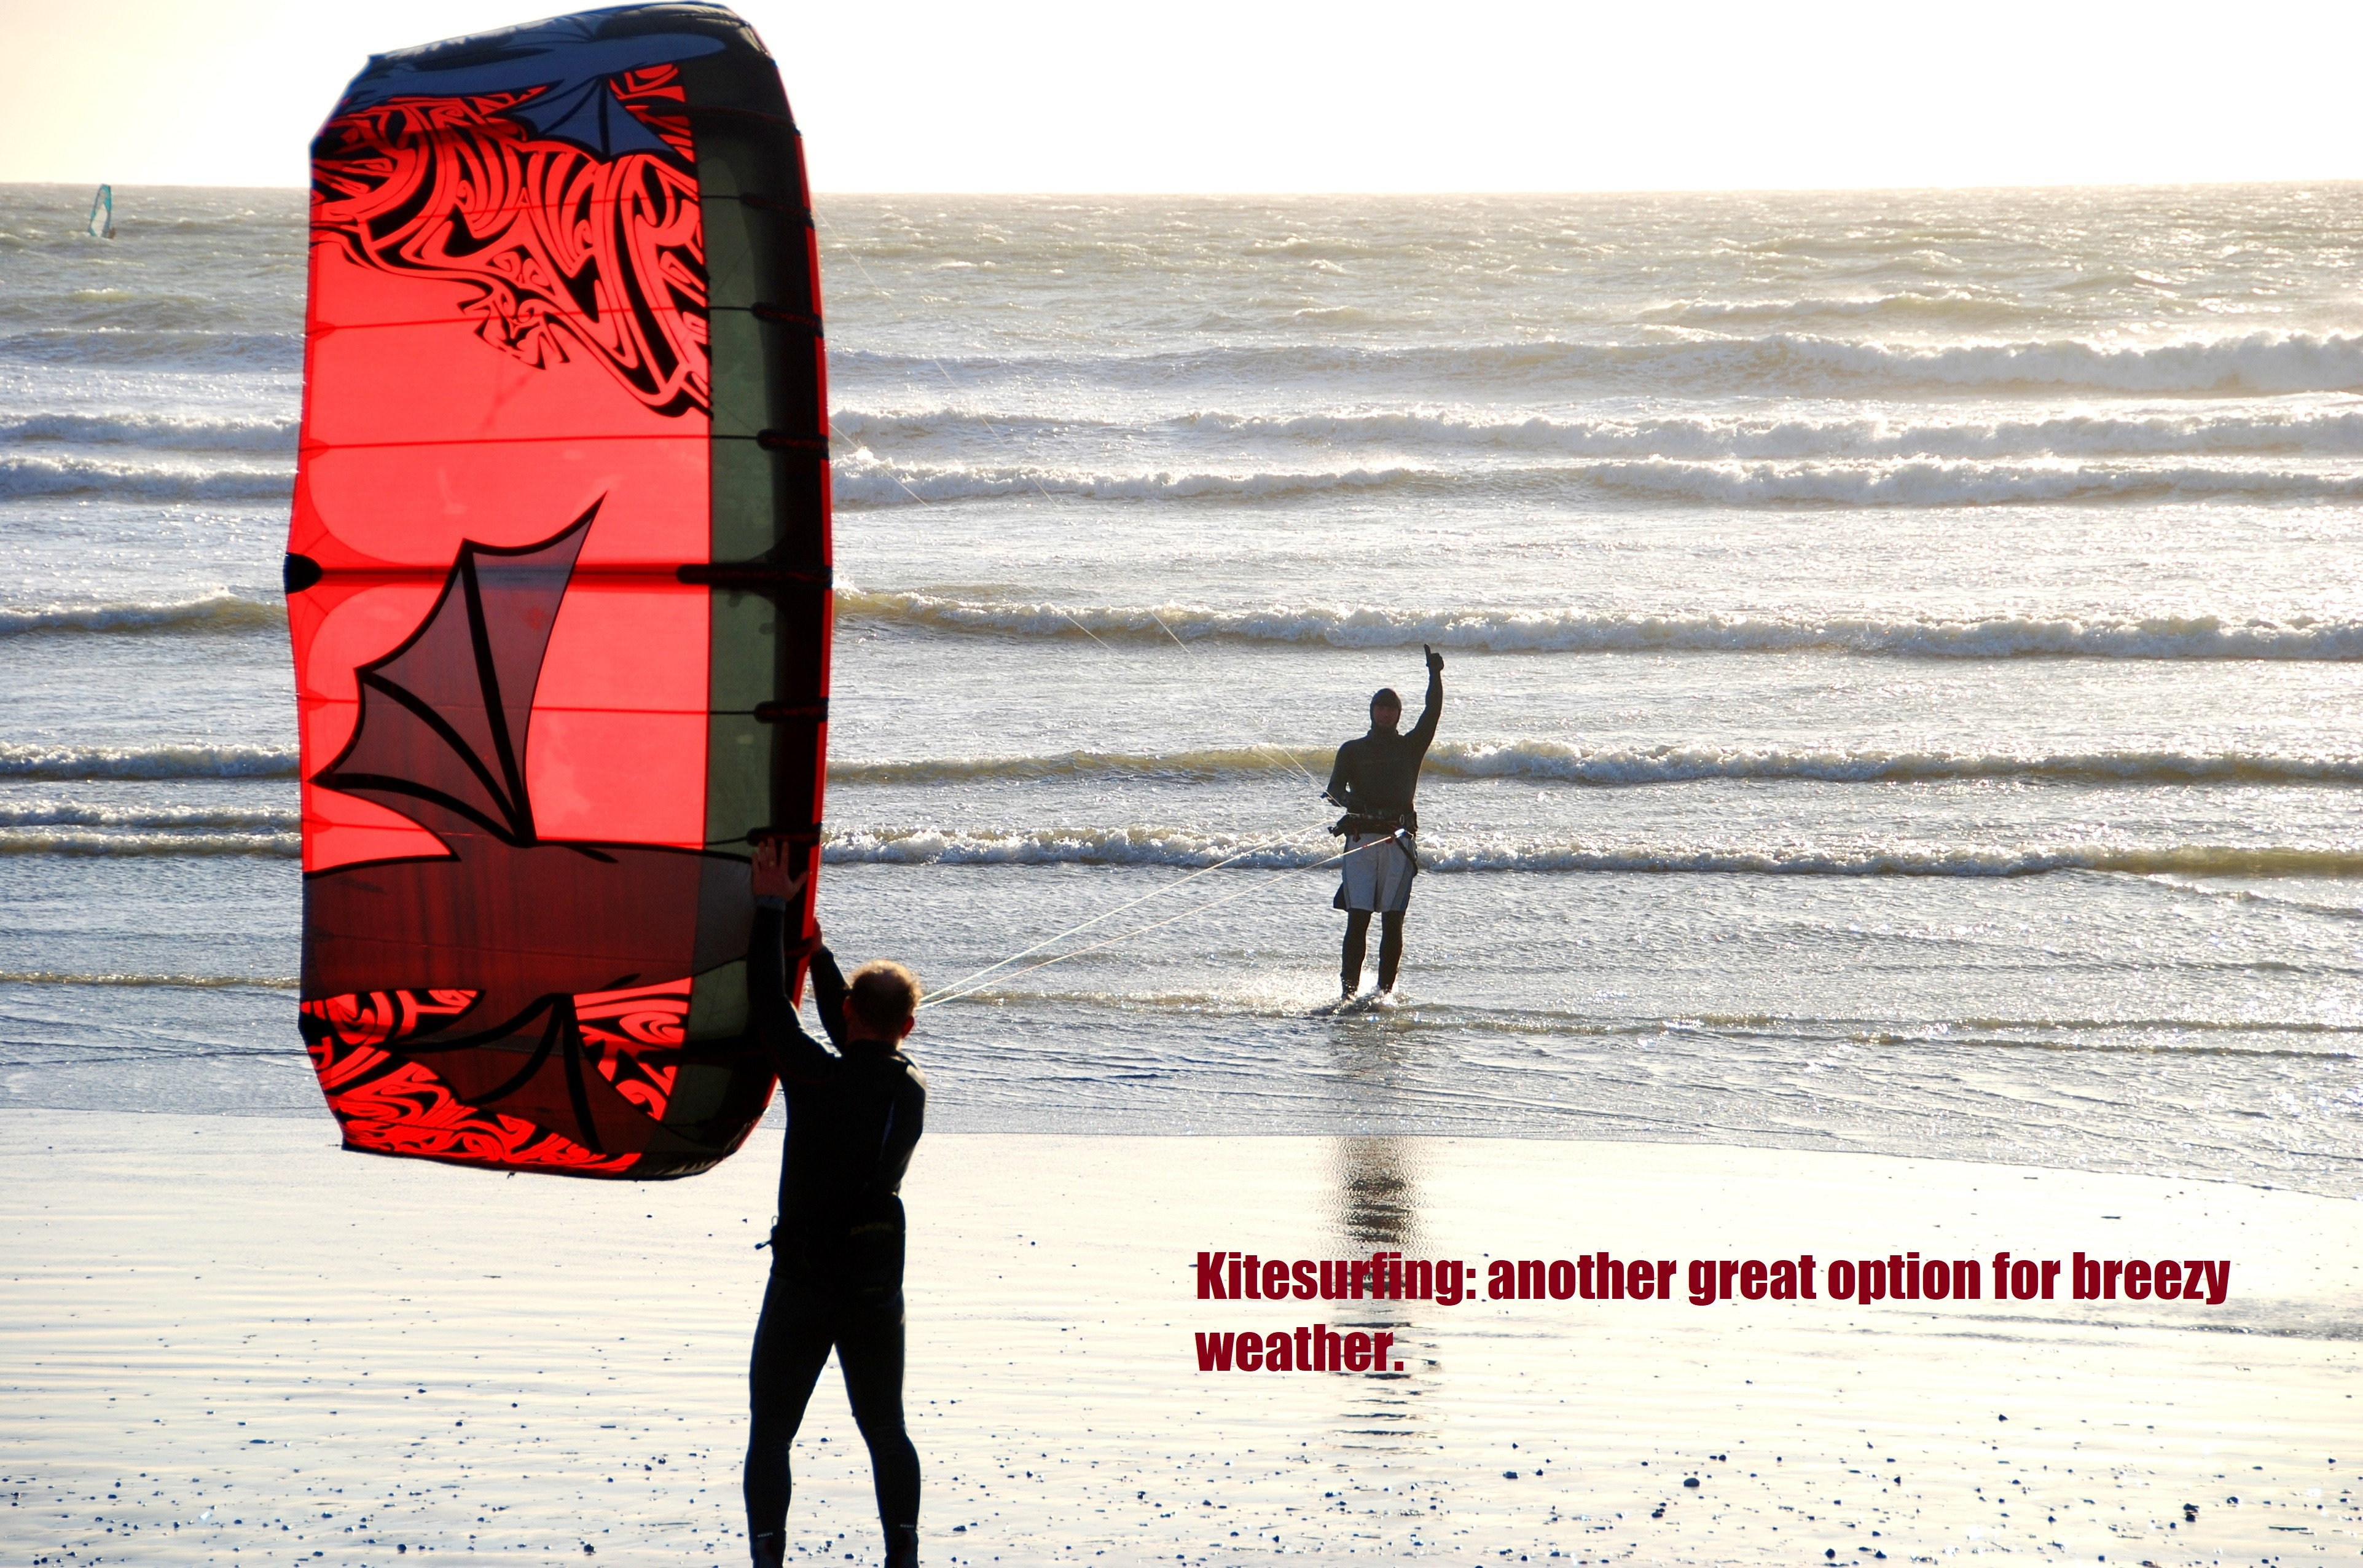 Kitesurfing another great option for breezy weather.